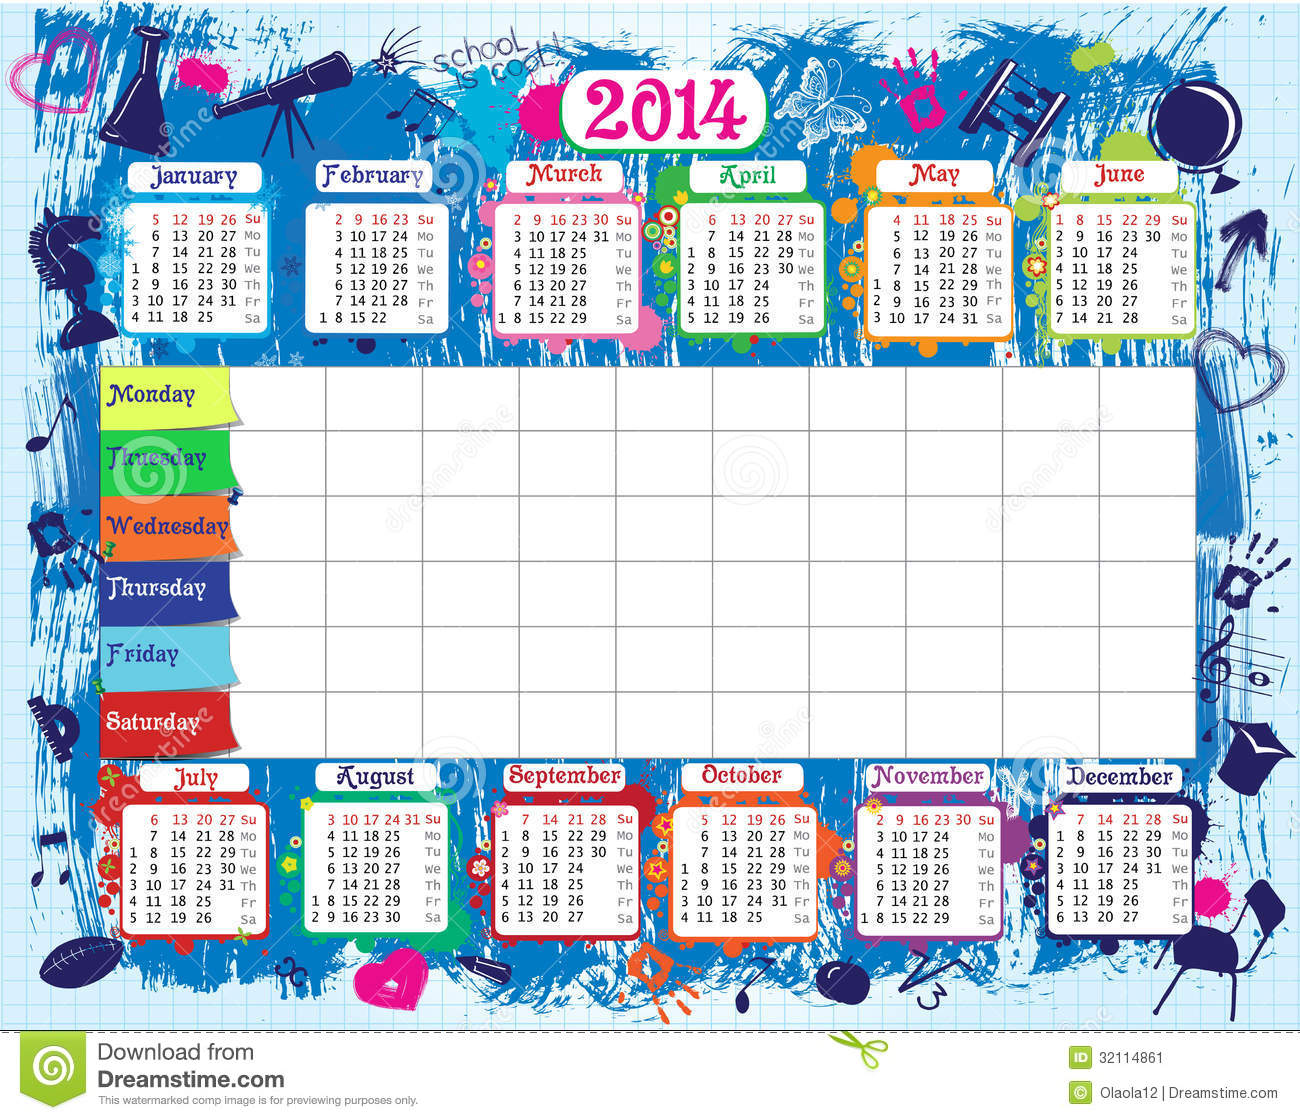 School Timetable And Calendar Image Image 32114861 – School Time Table Designs